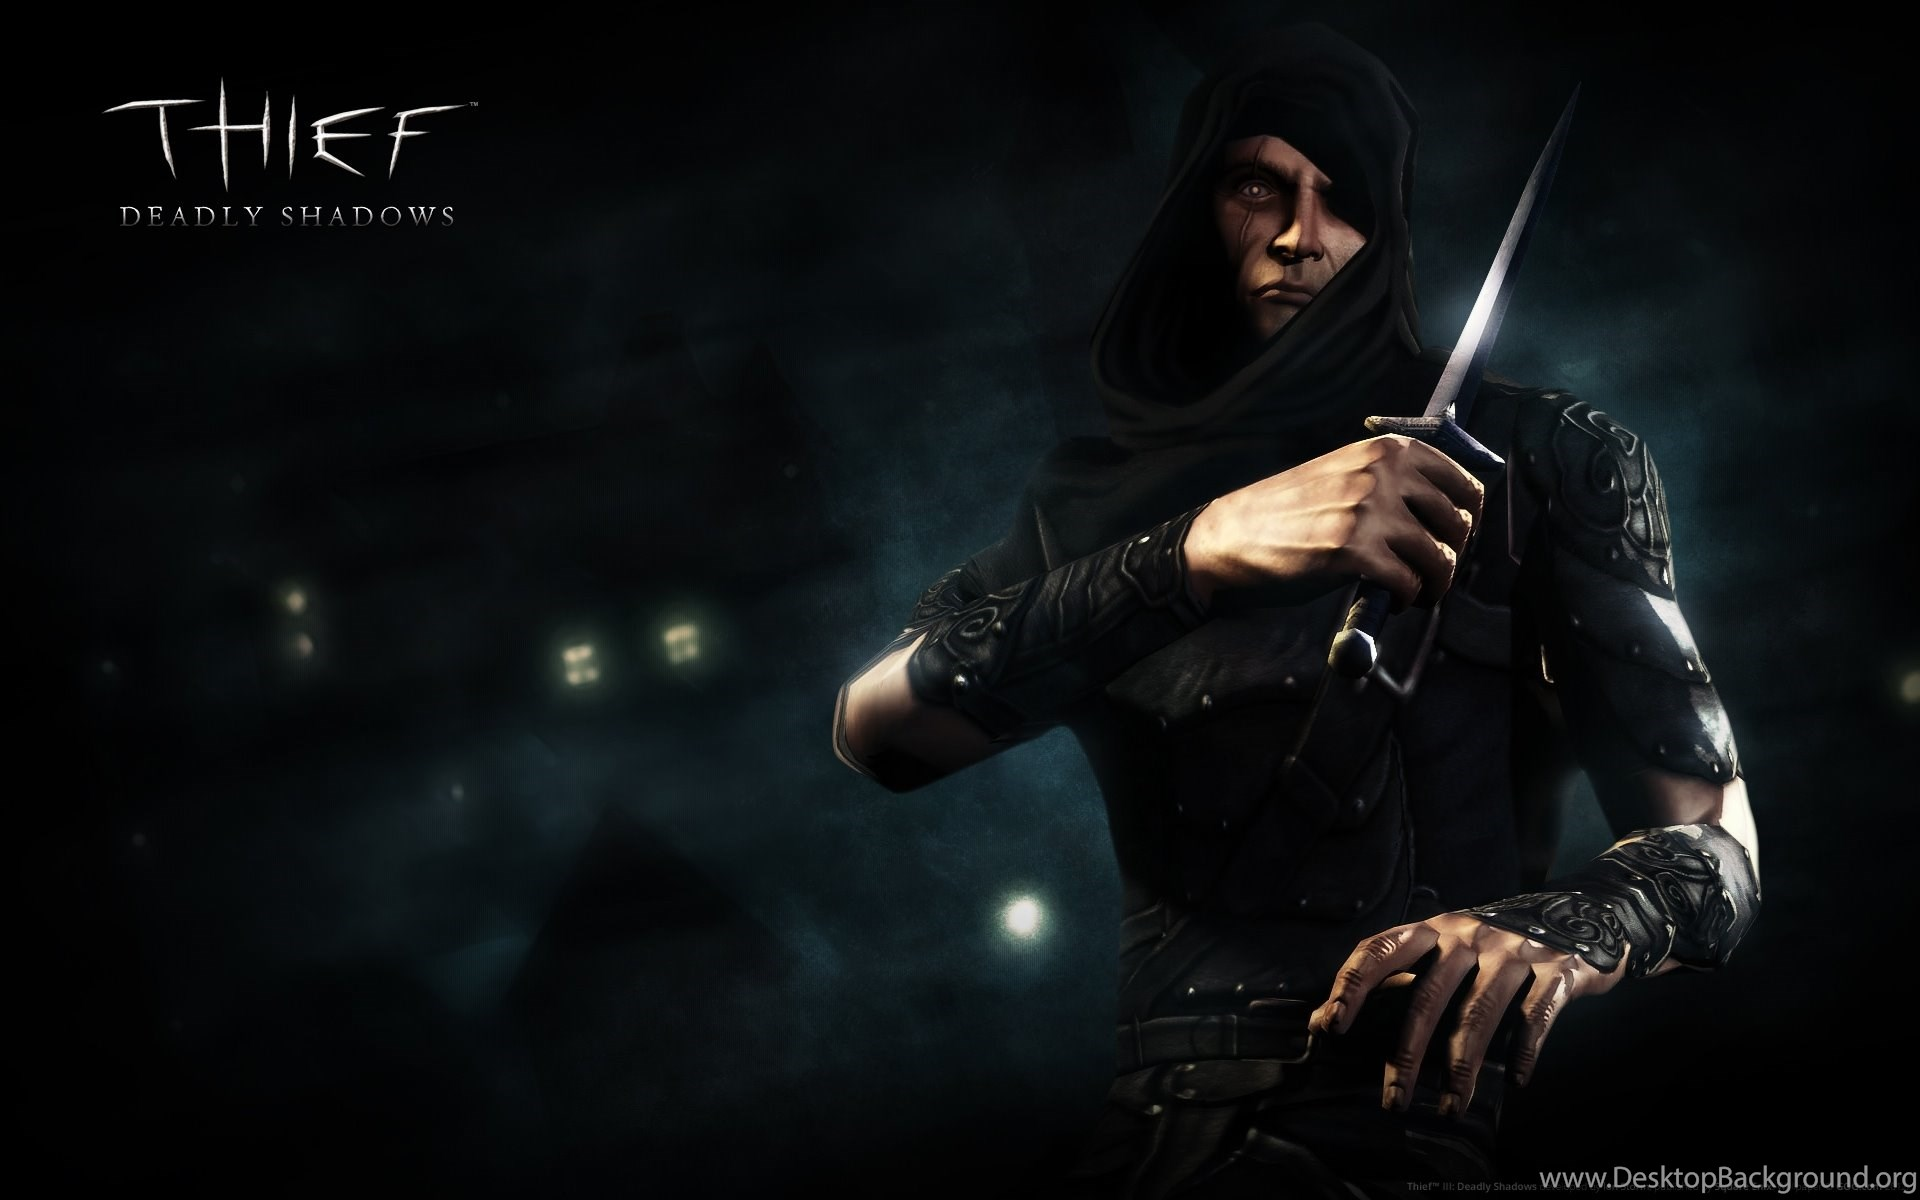 1 thief: deadly shadows hd wallpapers desktop background